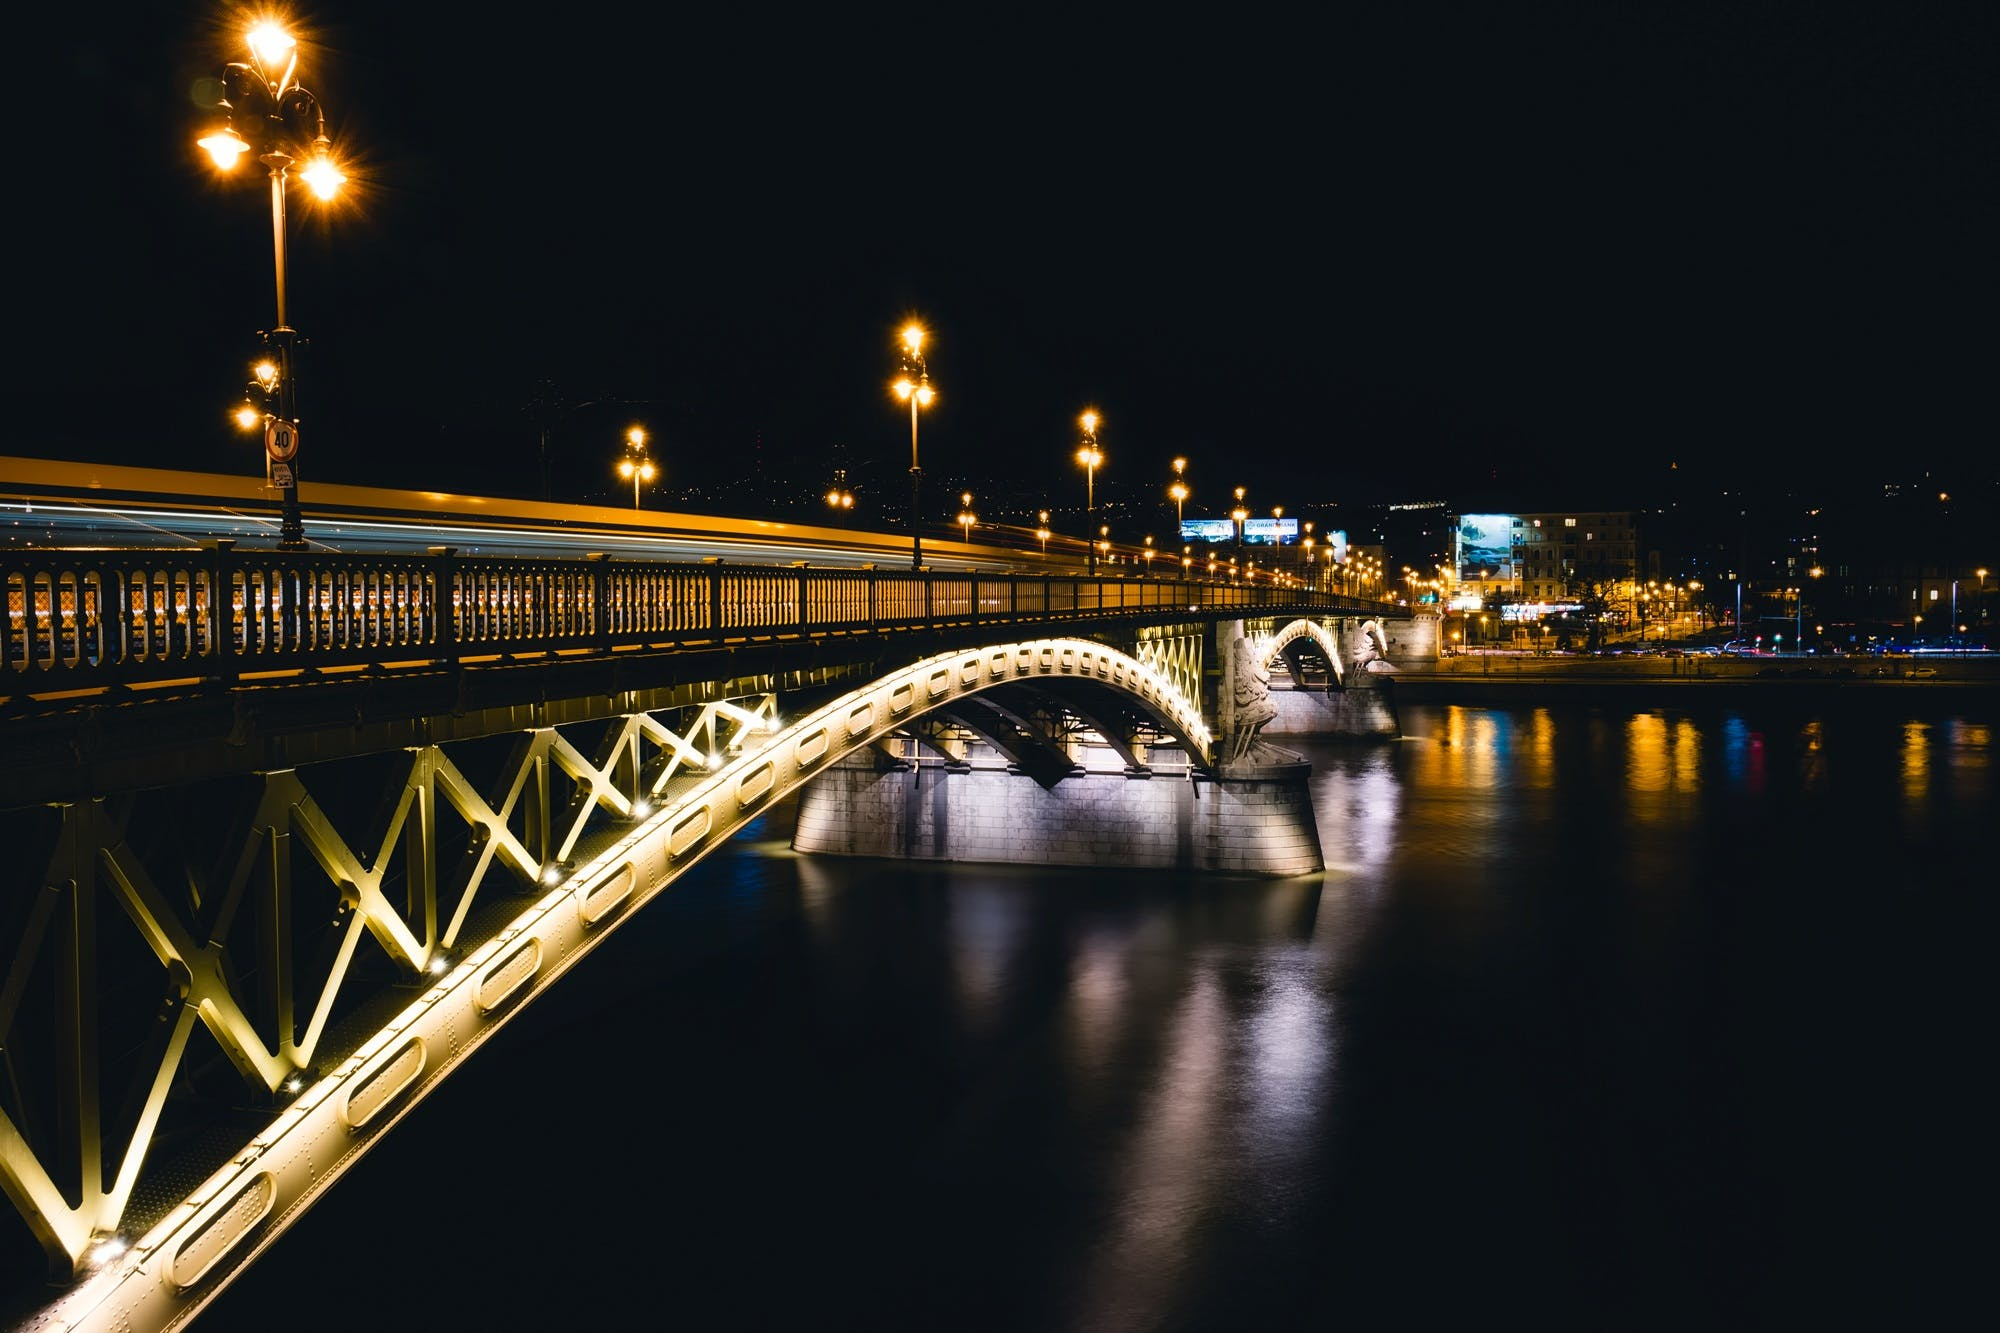 Gray Steel Bridge during Nighttime